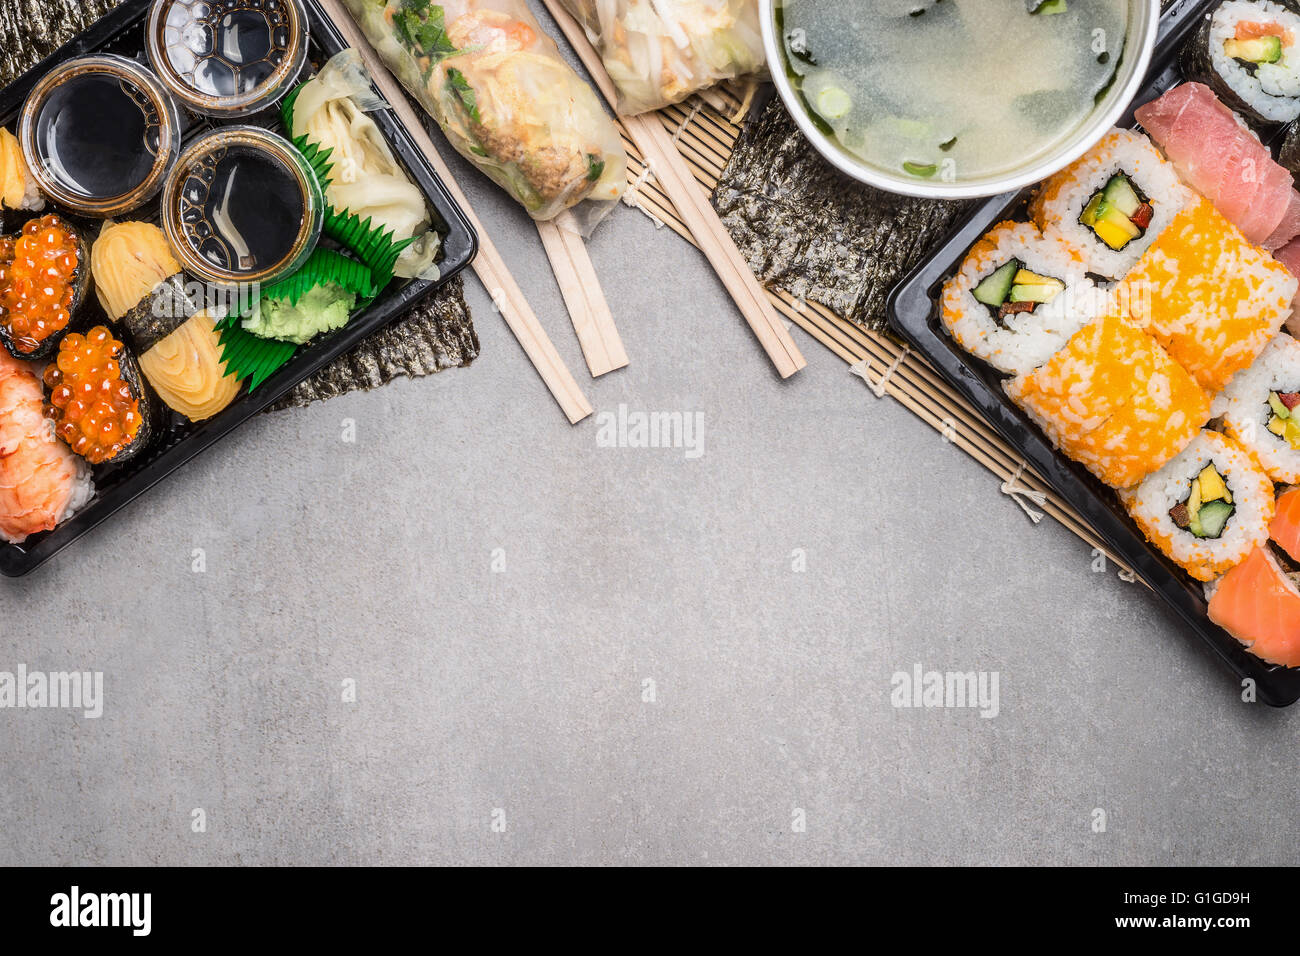 Sushi menu with summer rolls in rice paper wrappers and miso soup on gray  stone background, top view, border.  - Stock Image